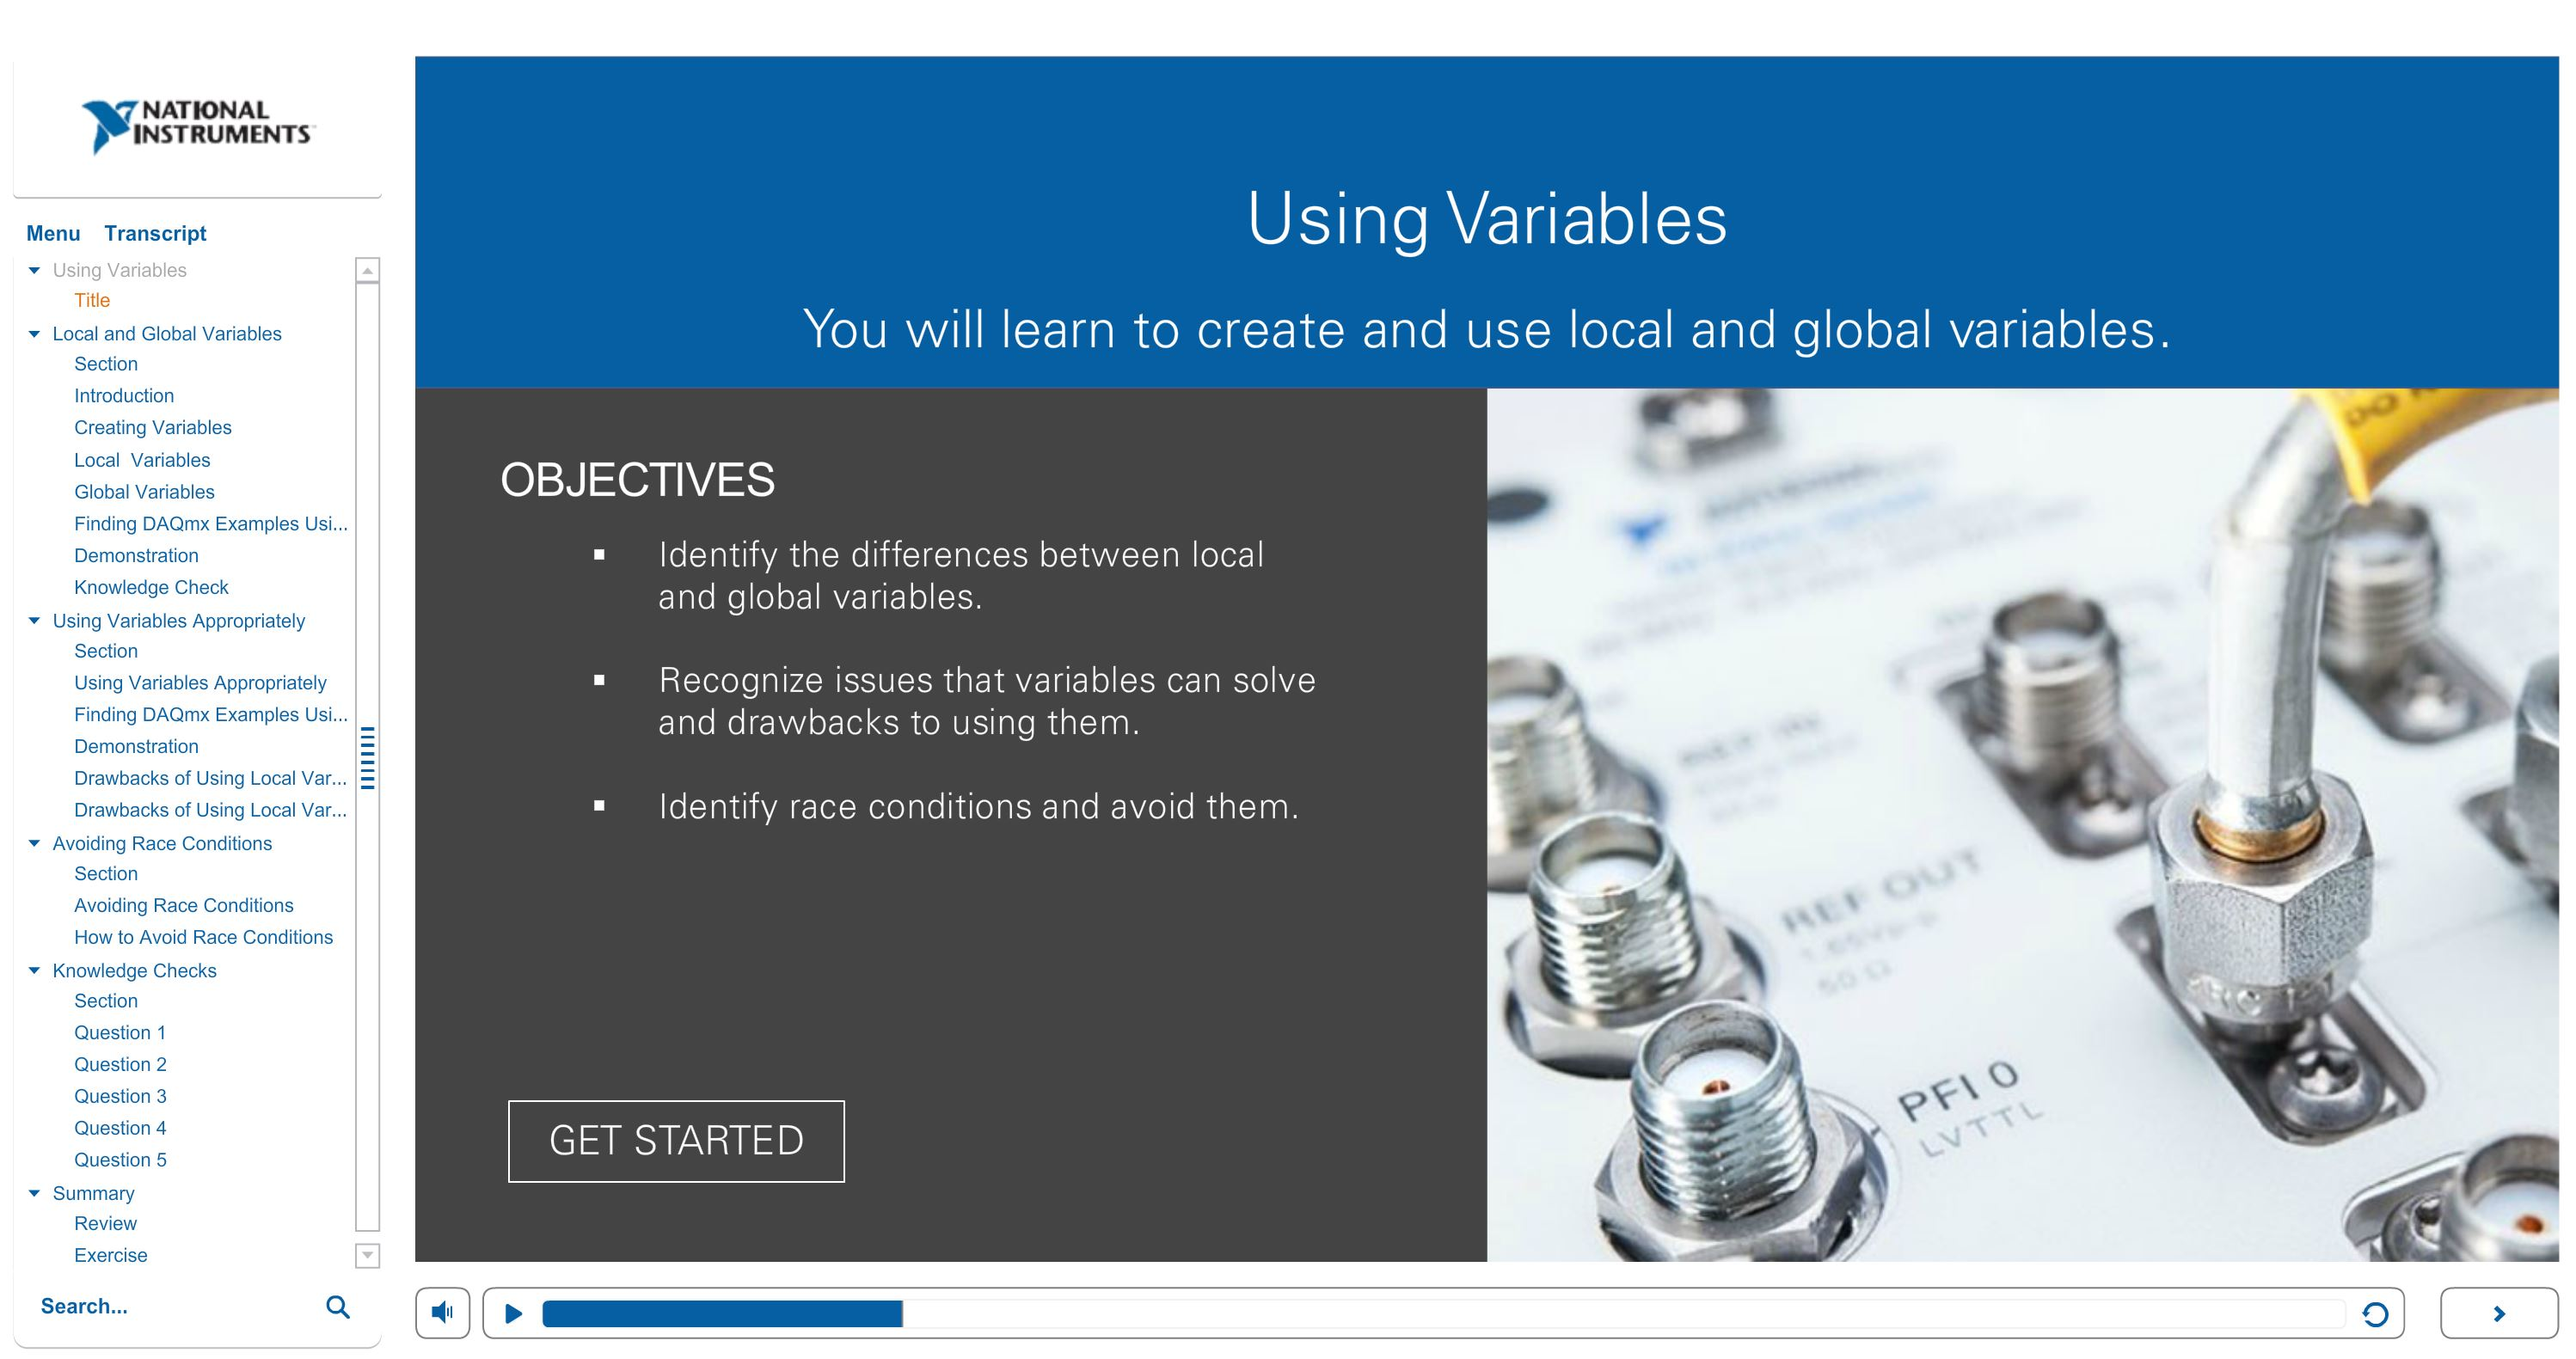 LabVIEW Core 2 Training Course - National Instruments